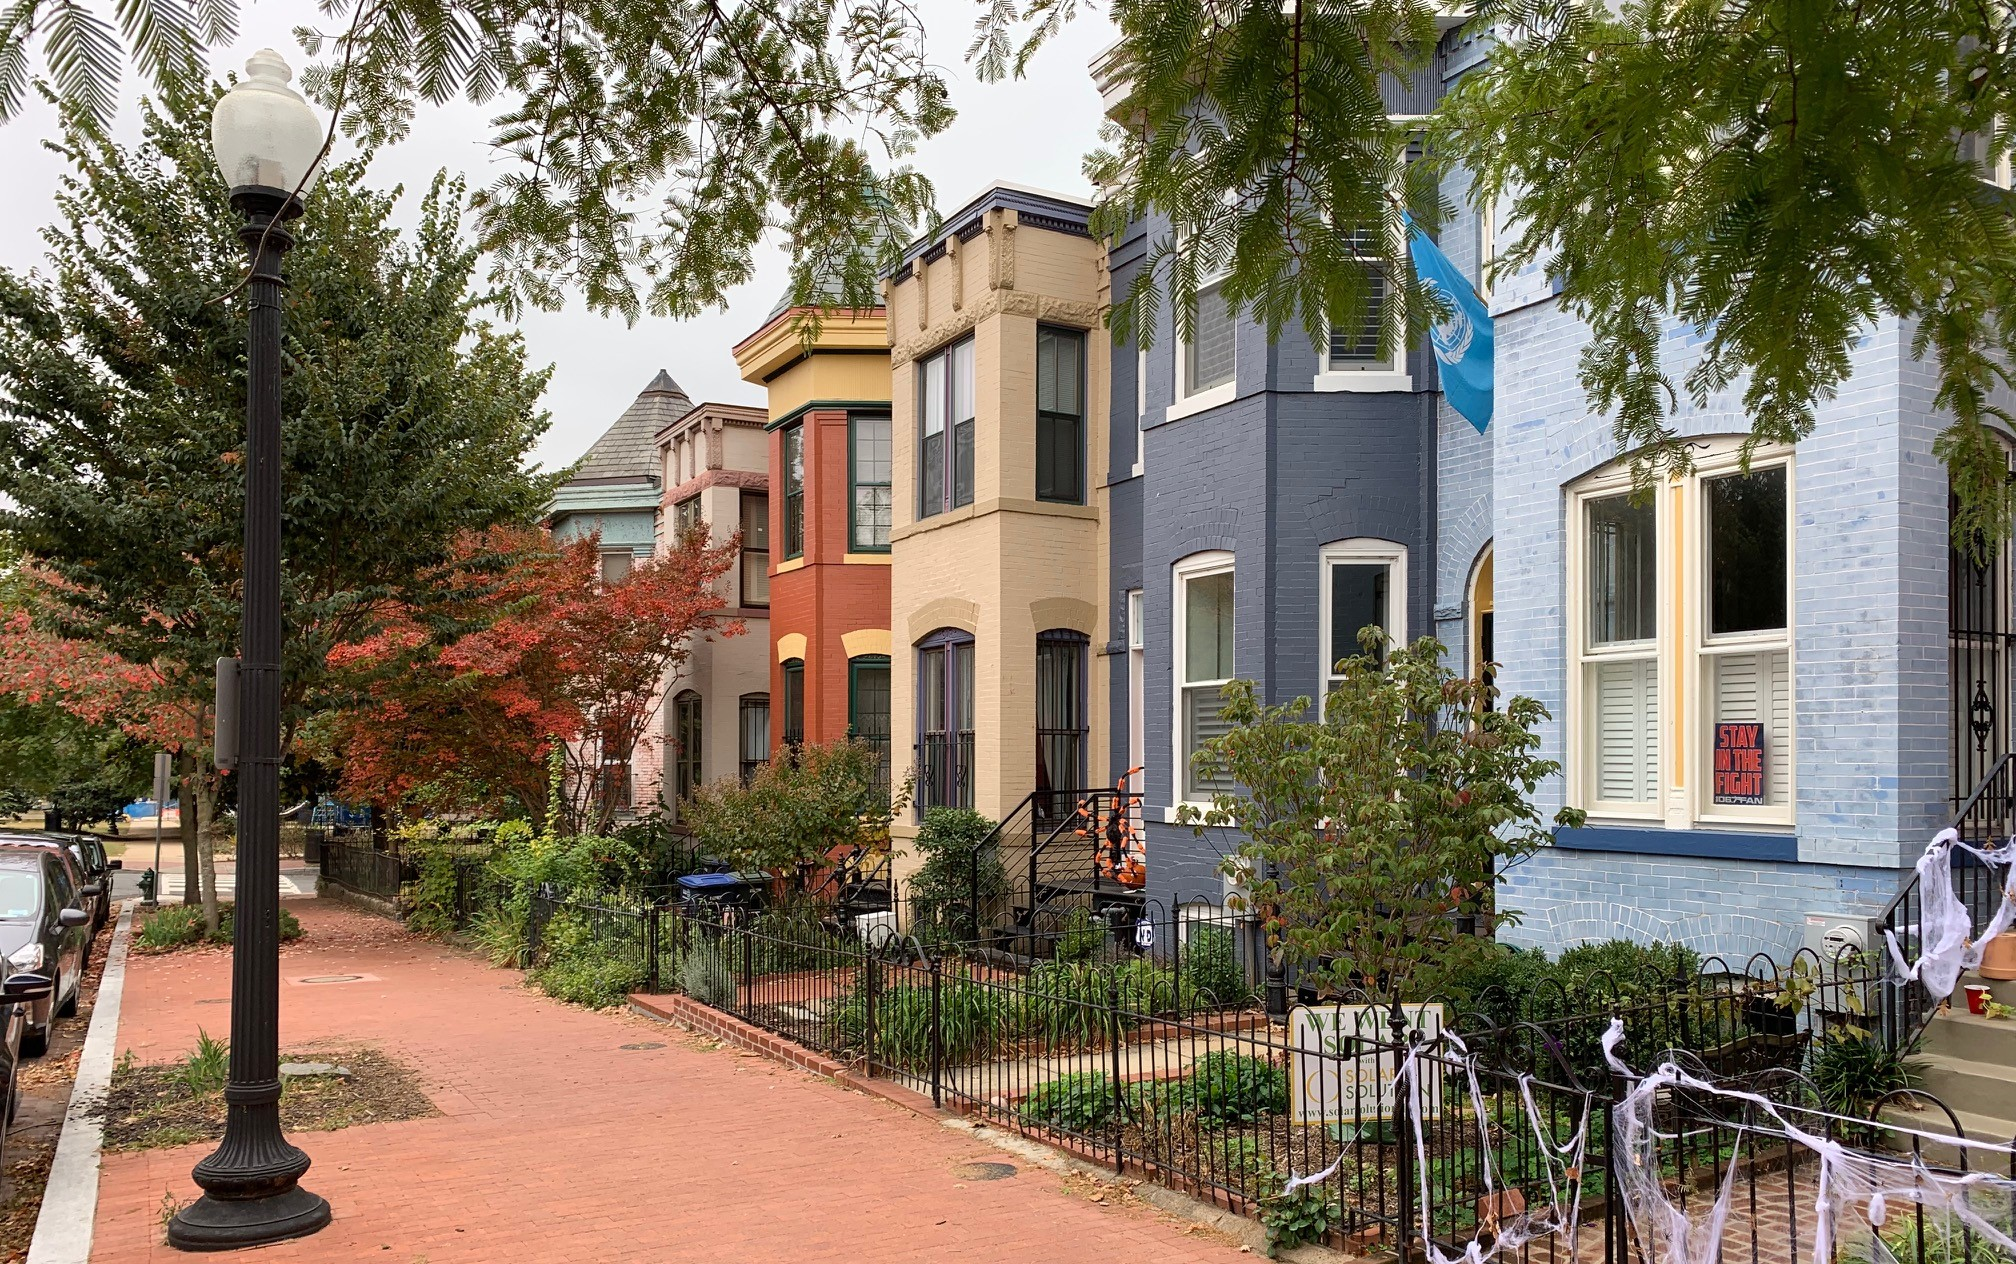 Washington, DC Historic Homes For Sale. 2nd St SE in Capitol Hill. Artyom Shmatko Luxury Real Estate Agent